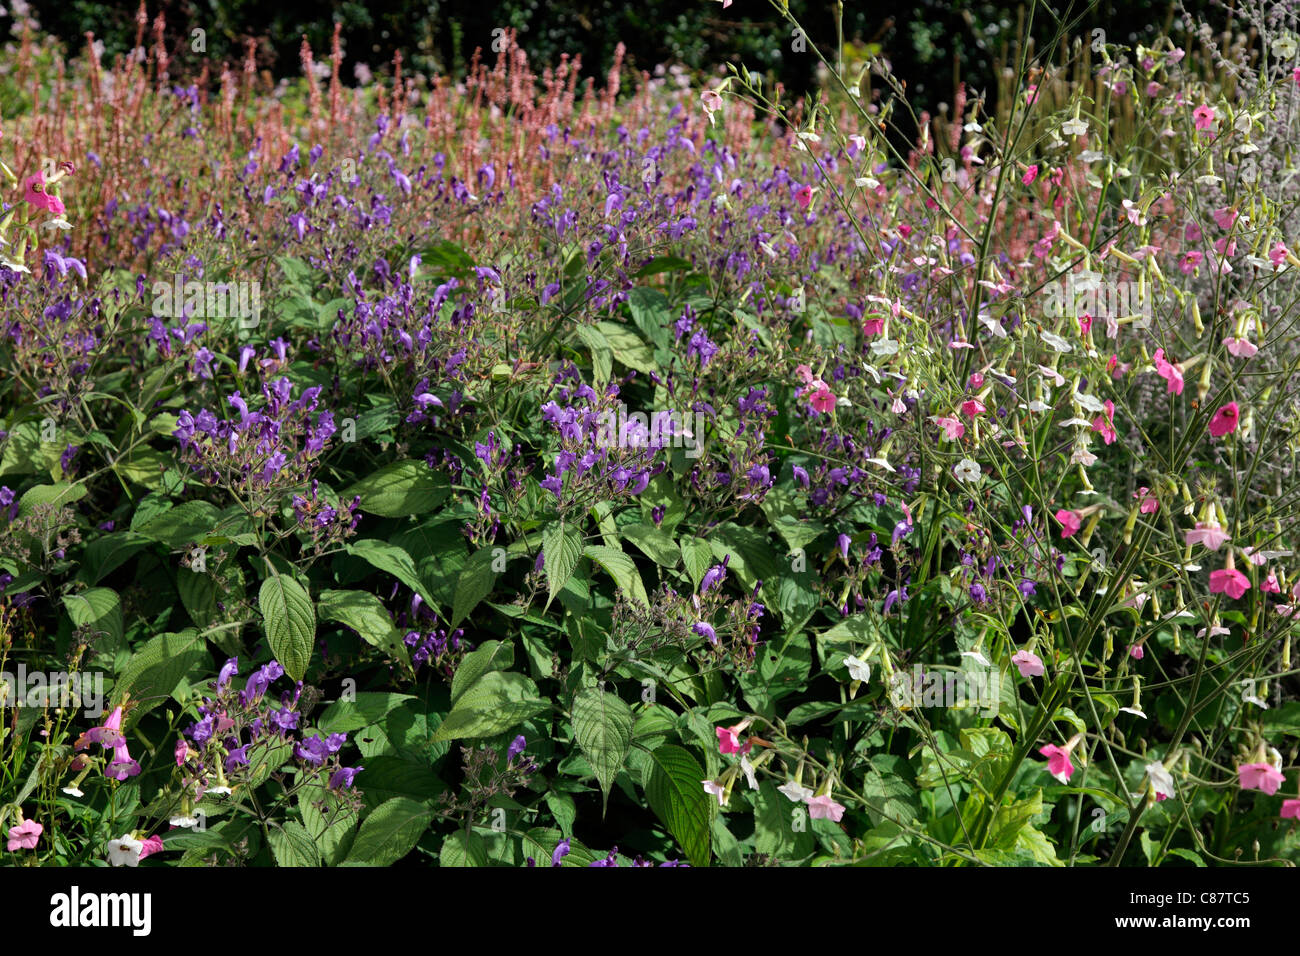 Nicotiana mutabilis with Strobilanthes wallichii and Perovskia 'Blue Spire' - Stock Image